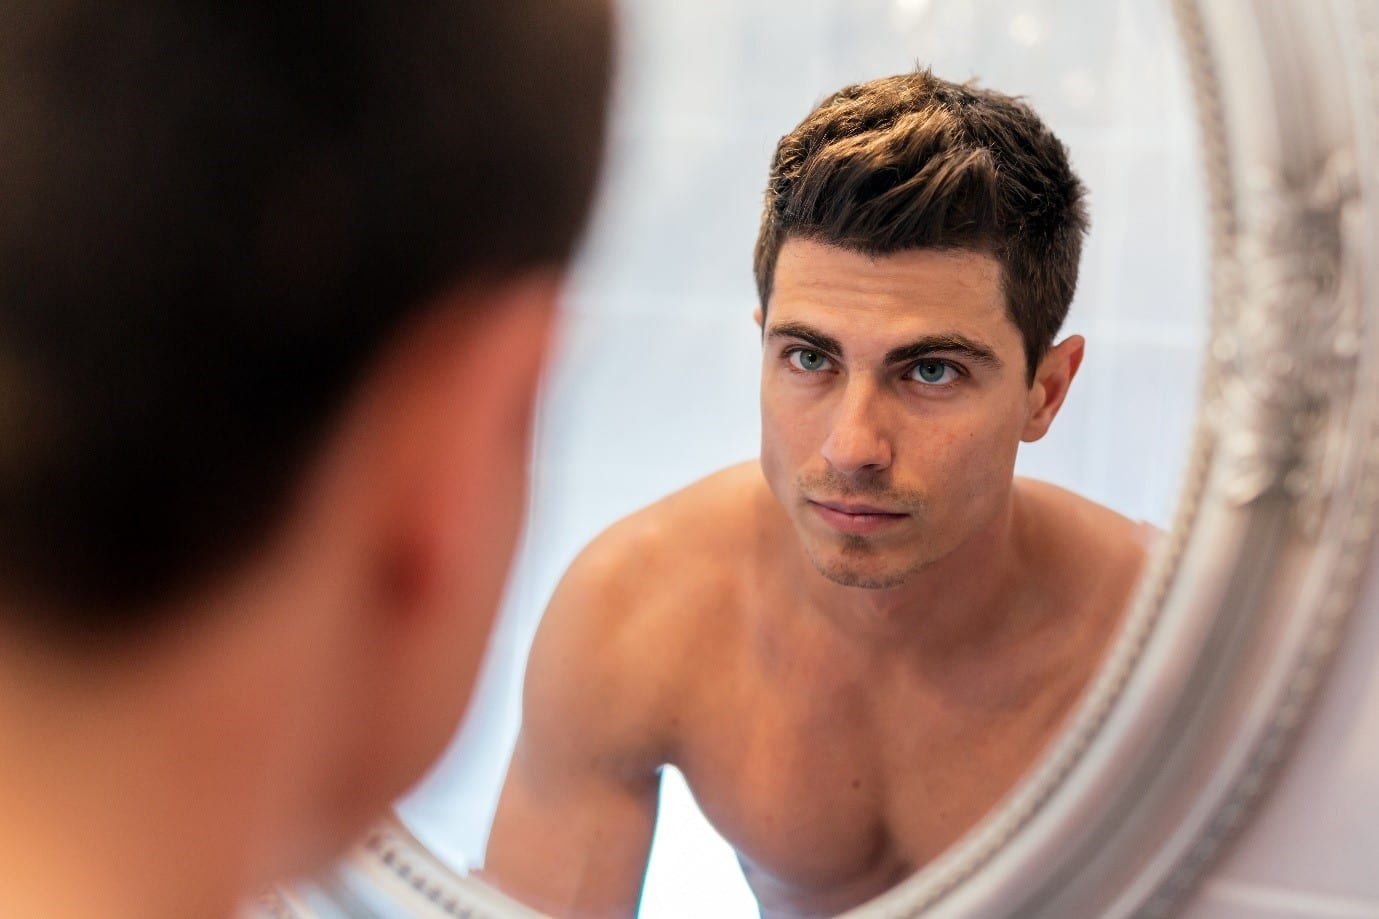 aesthetic treatments for men - man looking in the mirror